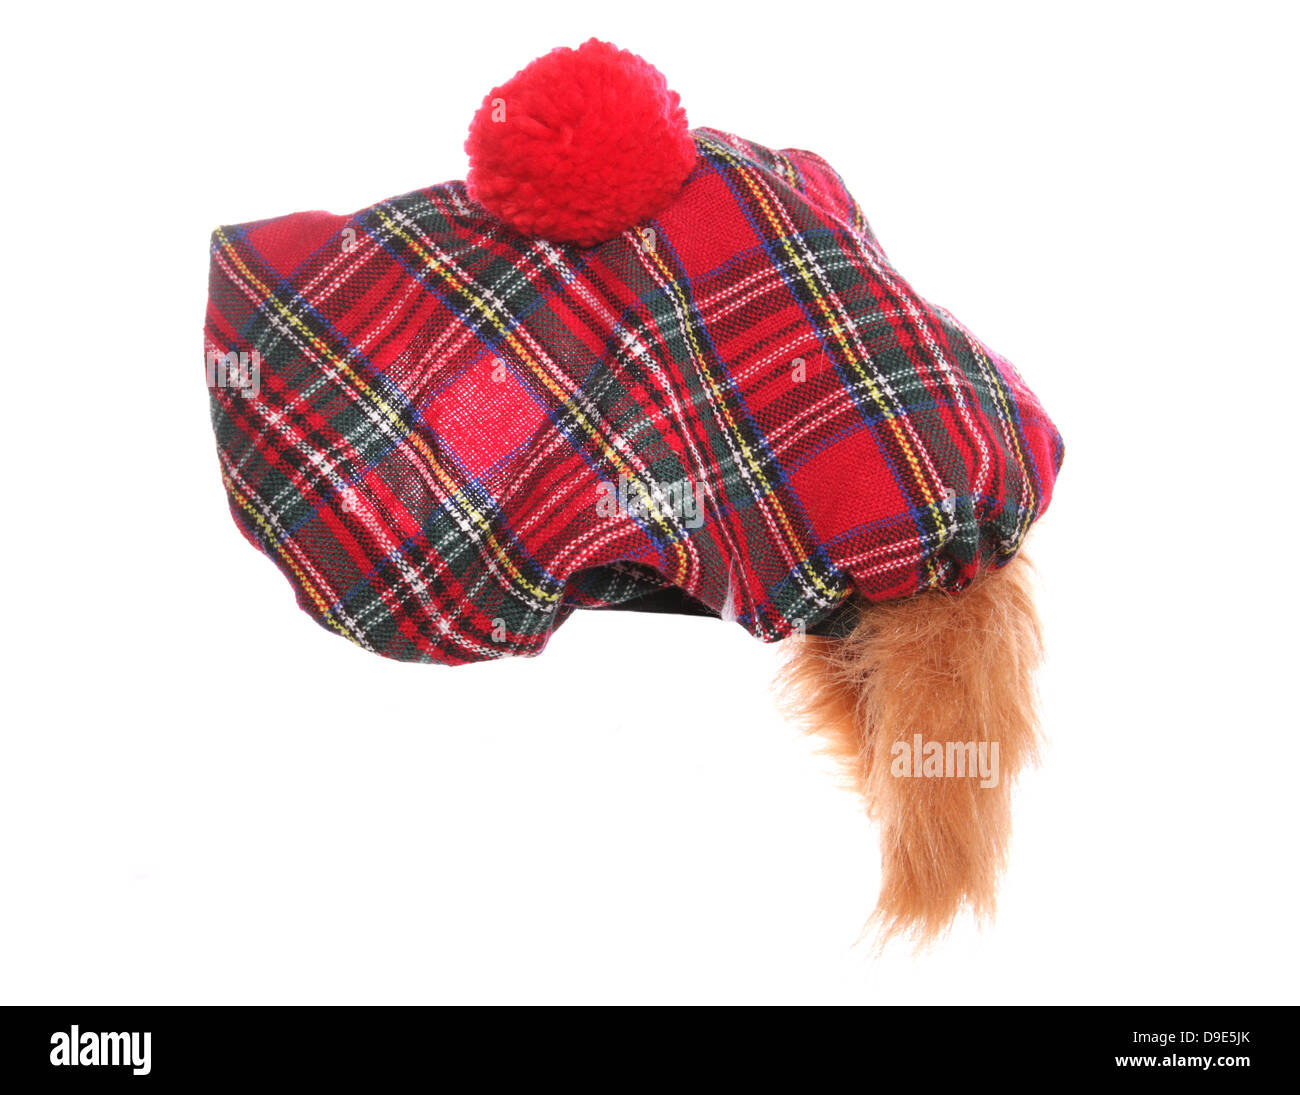 scottish tartan hat - Stock Image